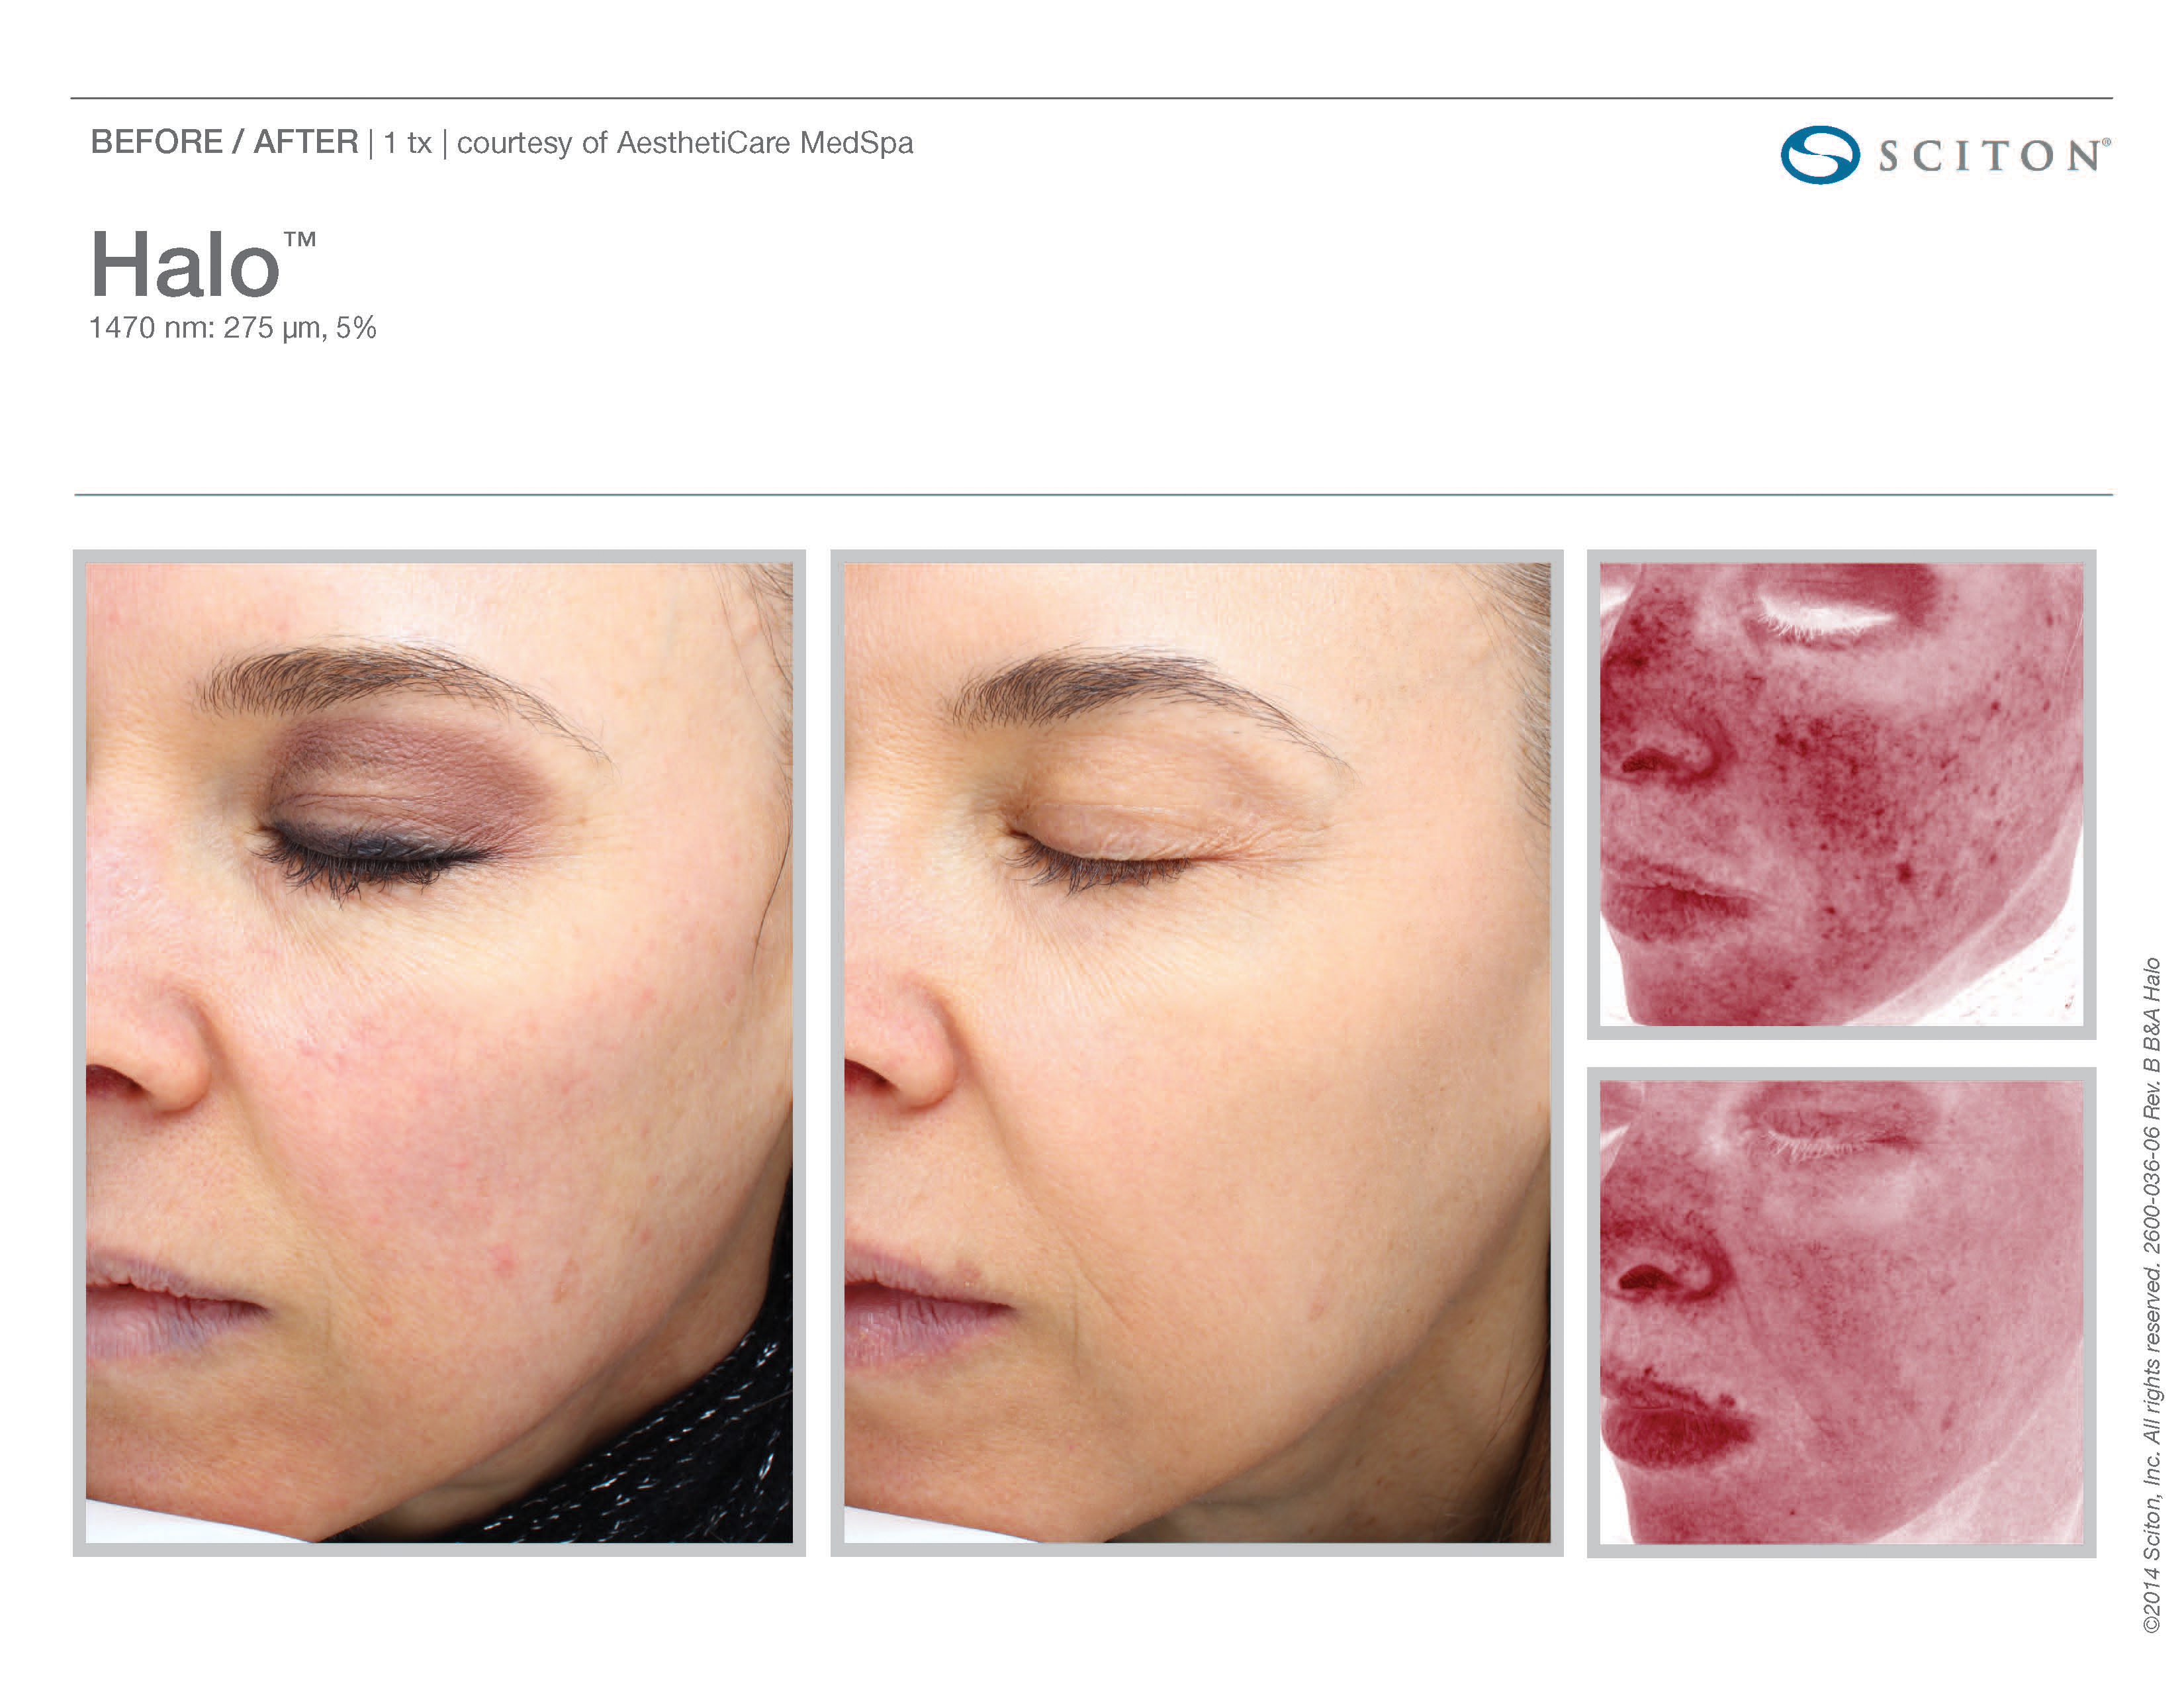 skin cosmetic surgery photo - 1